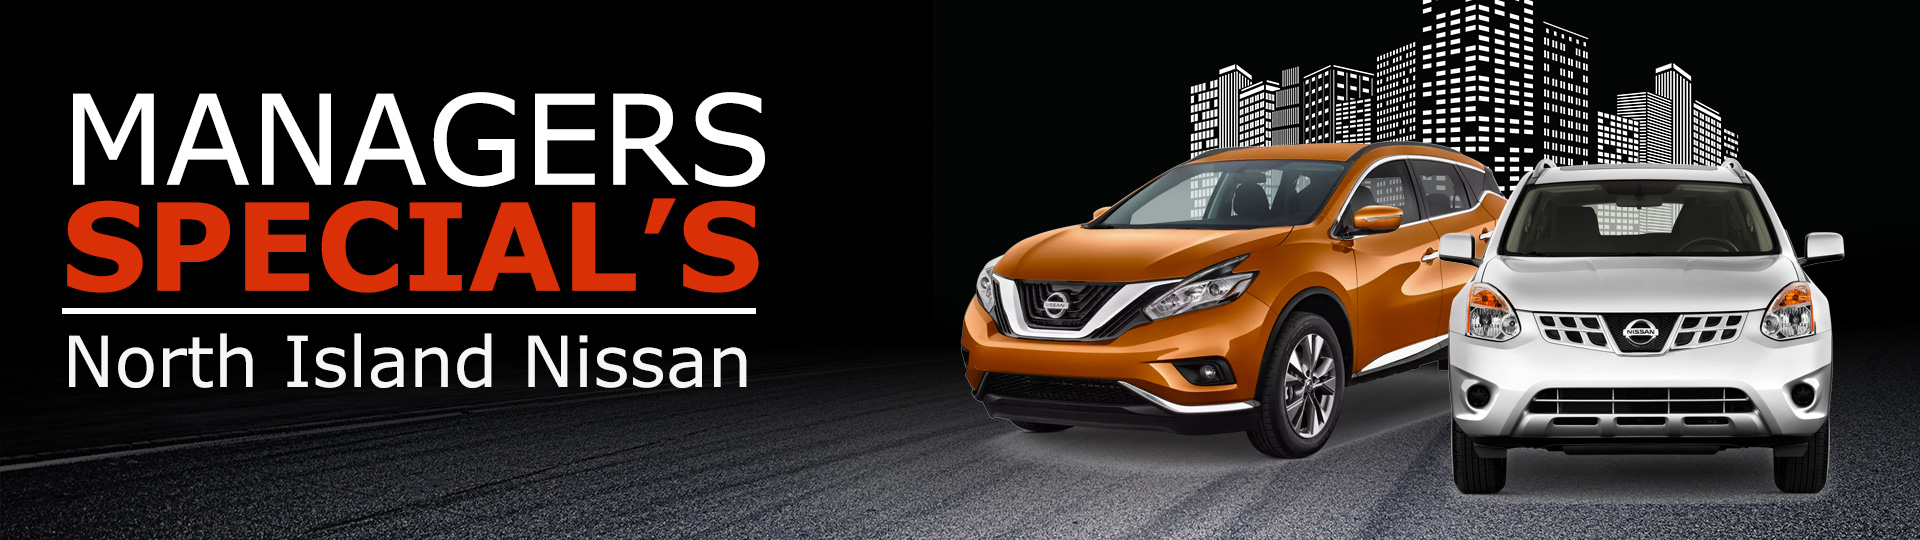 Great deals with North Island Nissan!